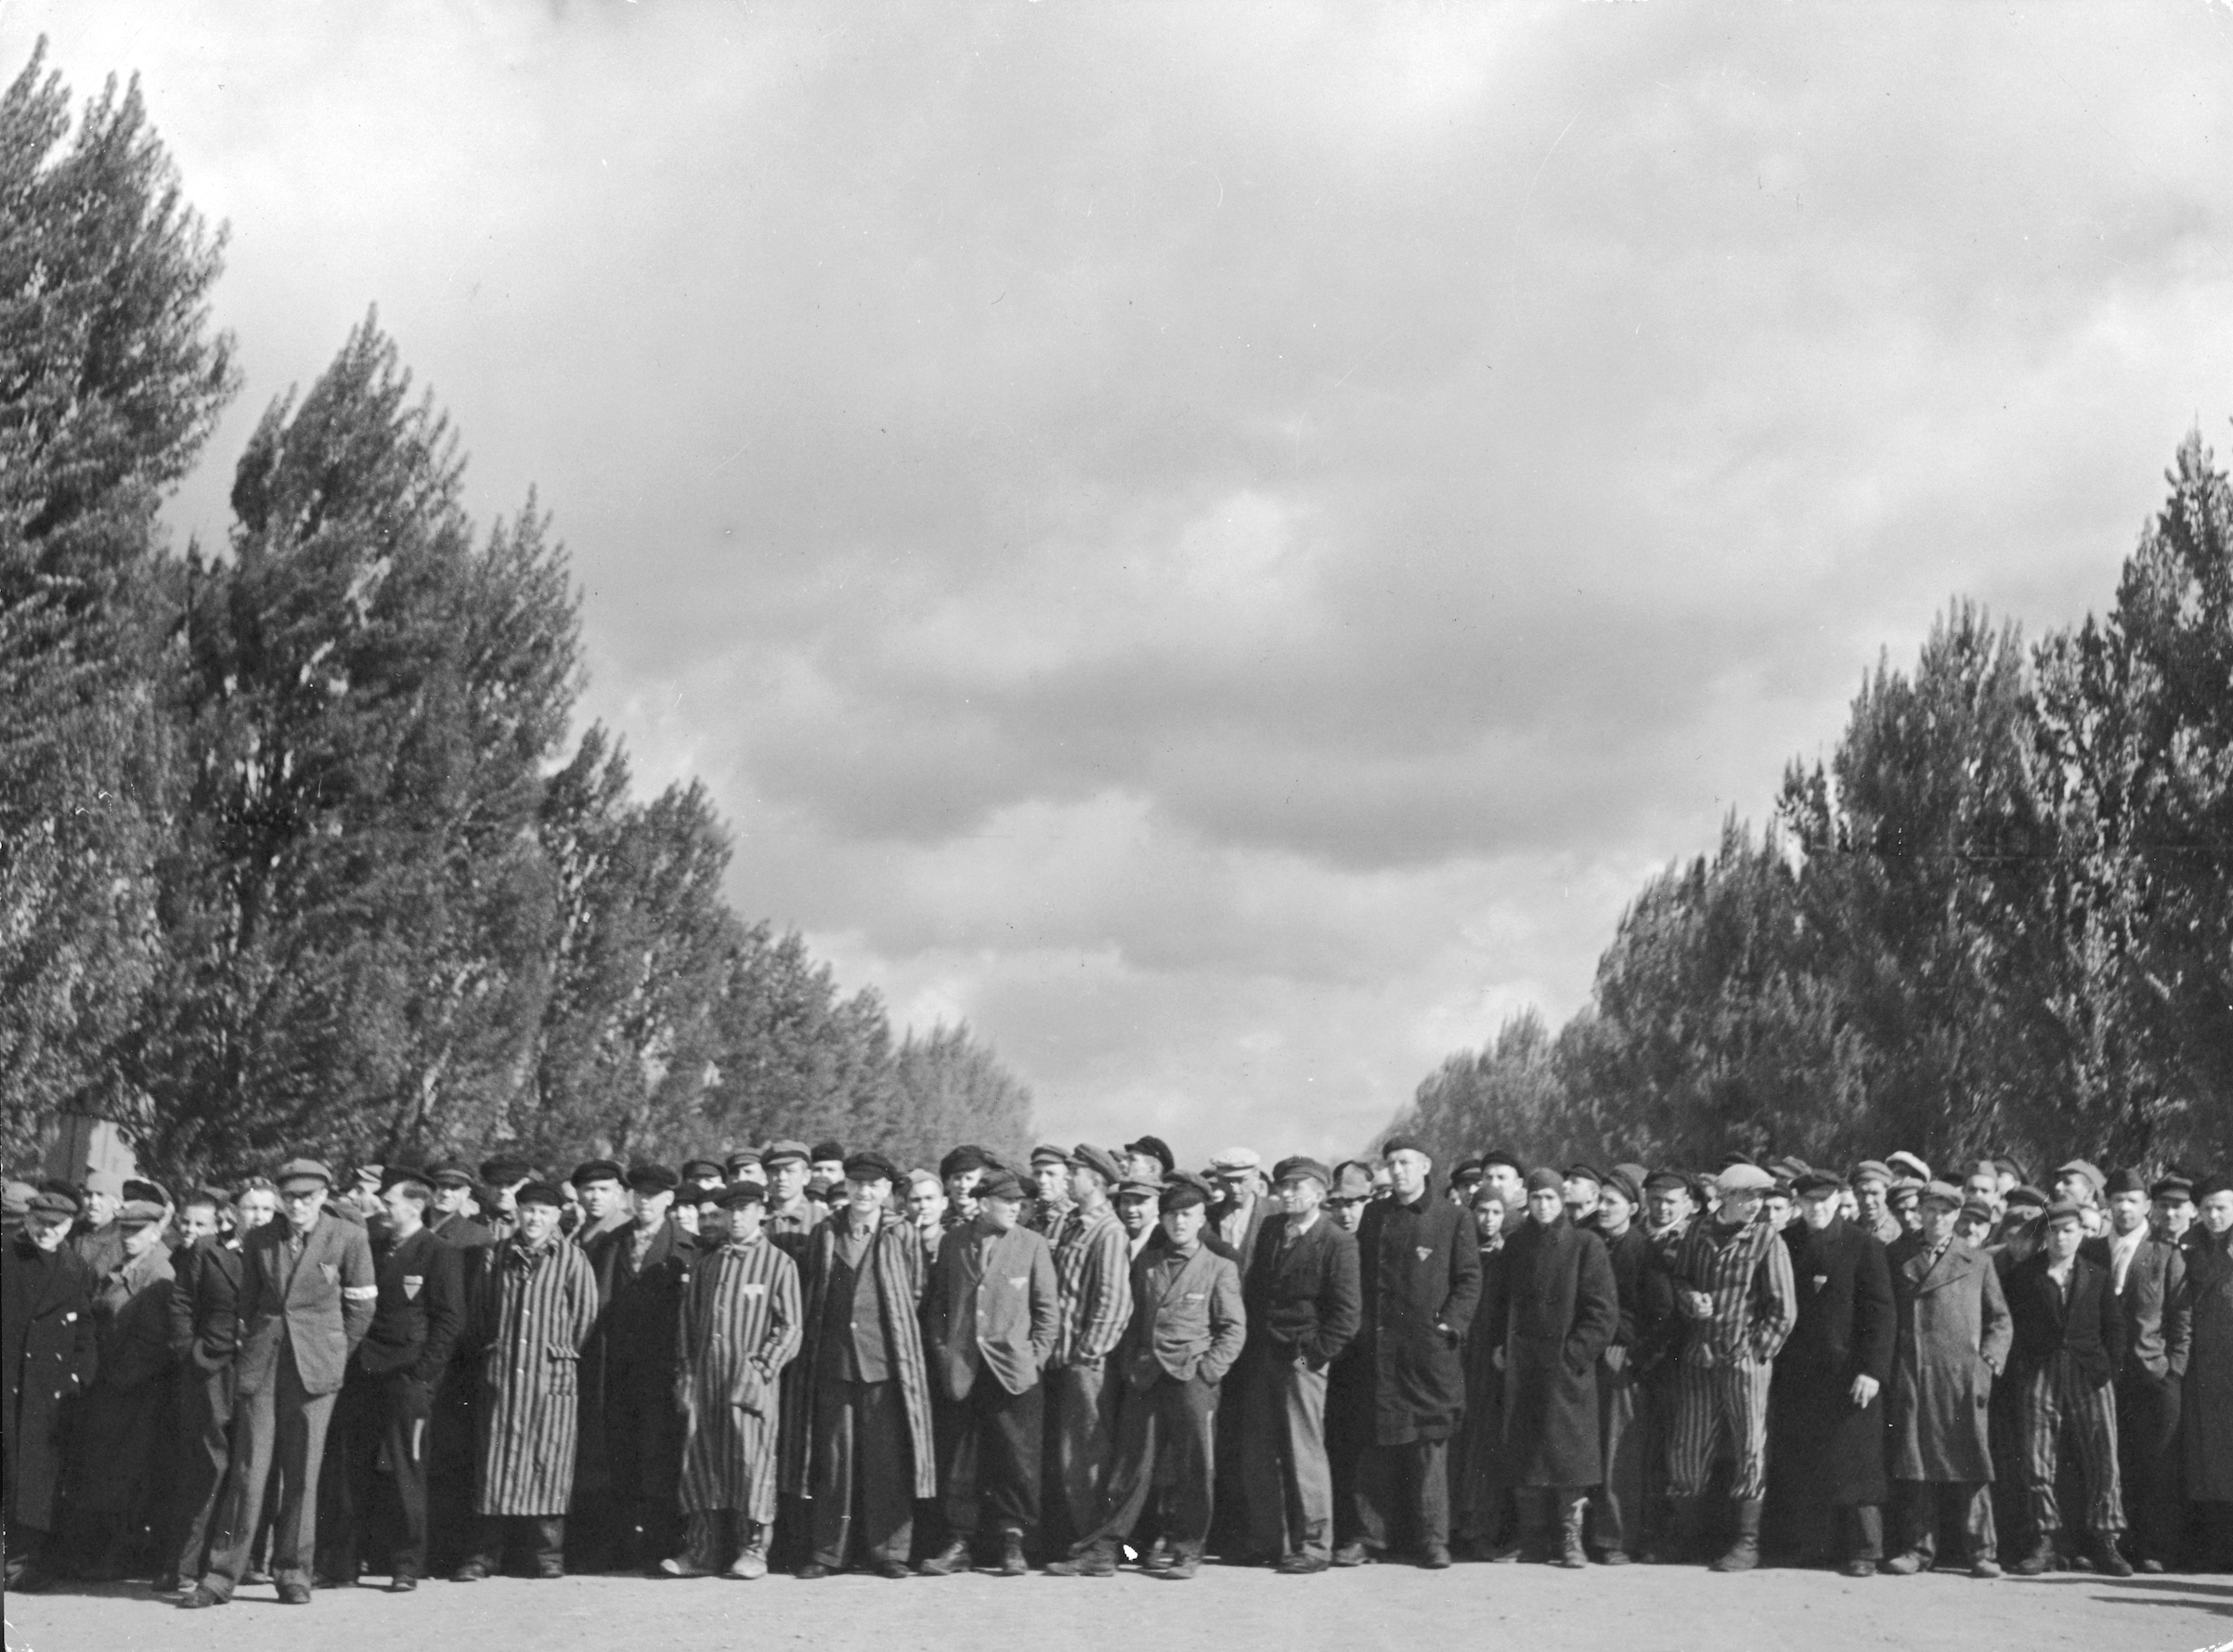 Liberated Dachau prisoners in 1945